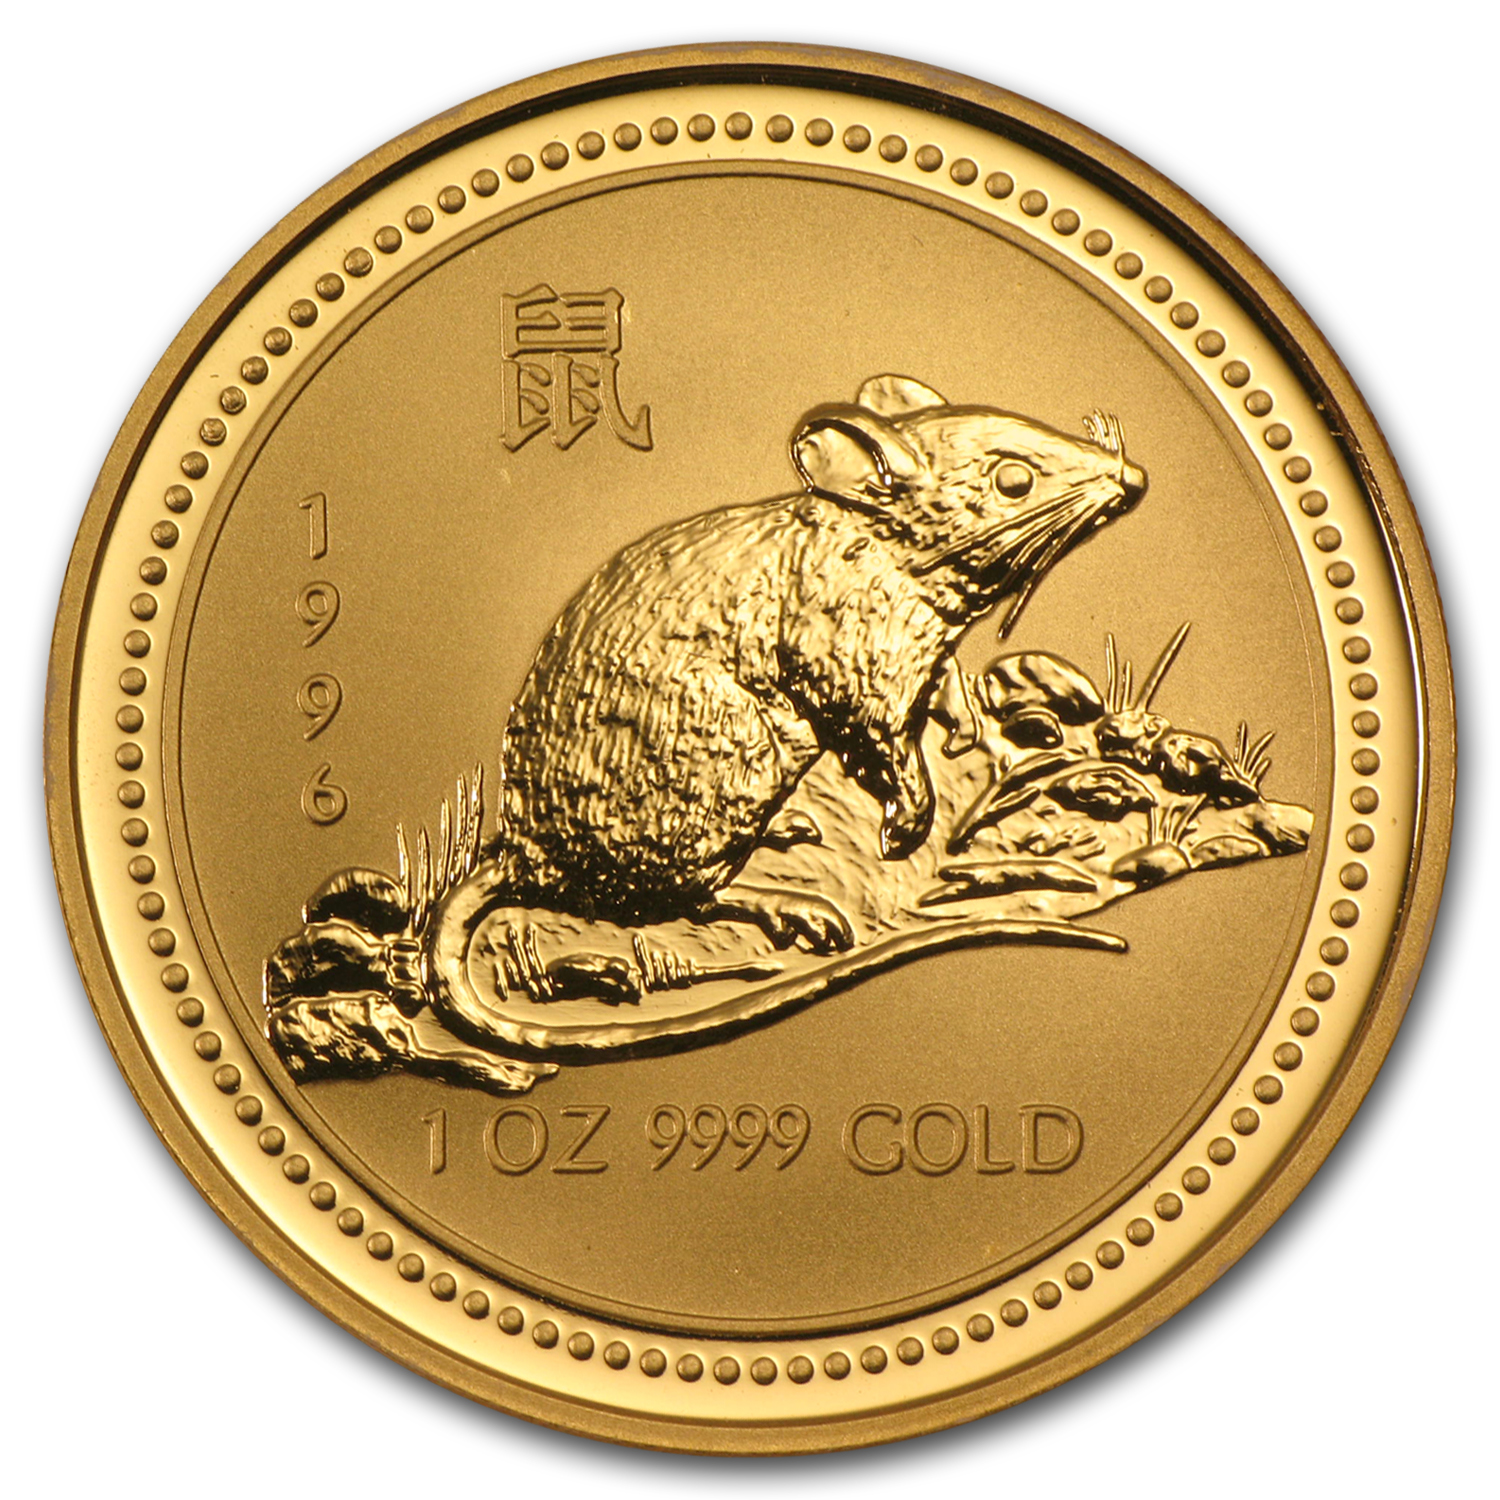 1996 1 oz Gold Year of the Rat Lunar Coin (Series I)